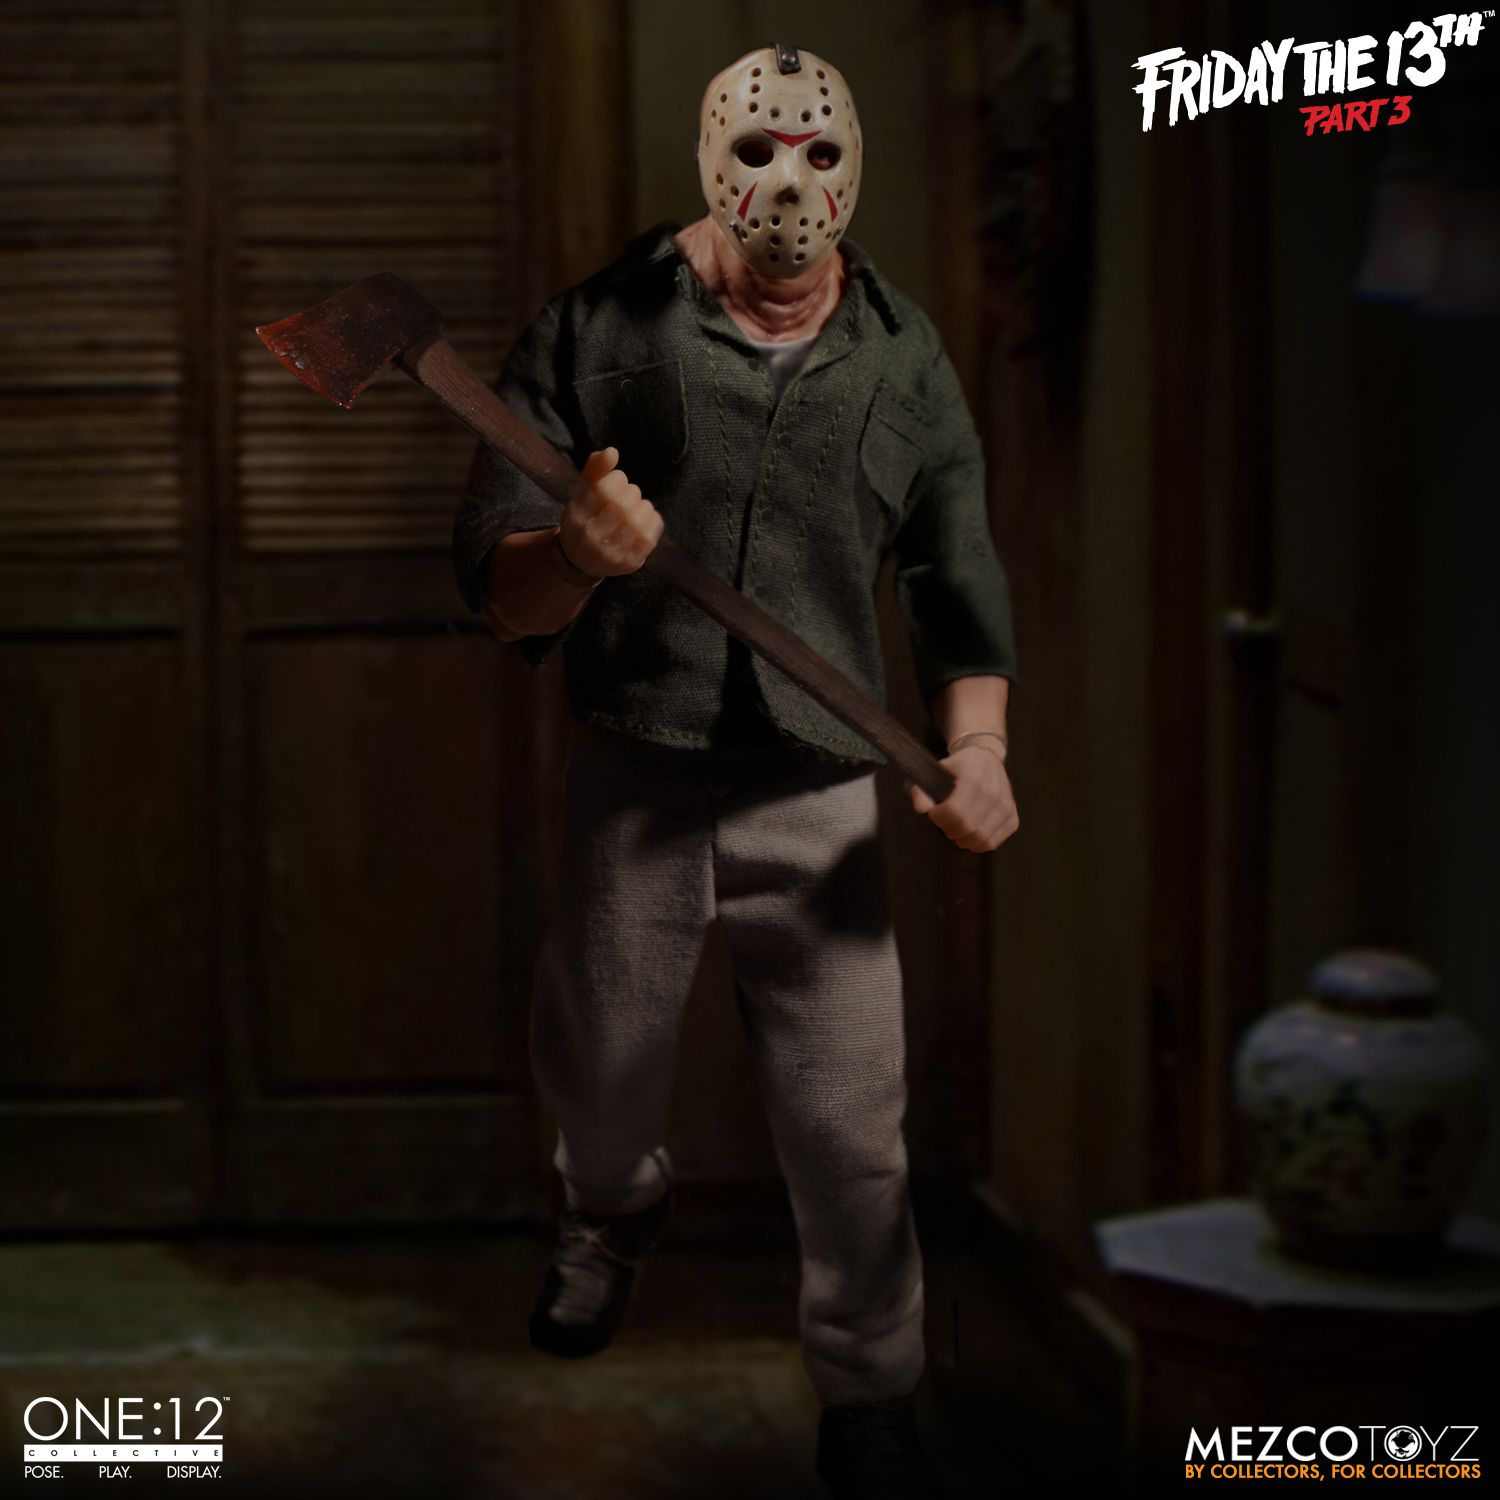 One:12 Friday the 13th Part 3 Jason Voorhees Mezco Toyz Figure Collective CHOP